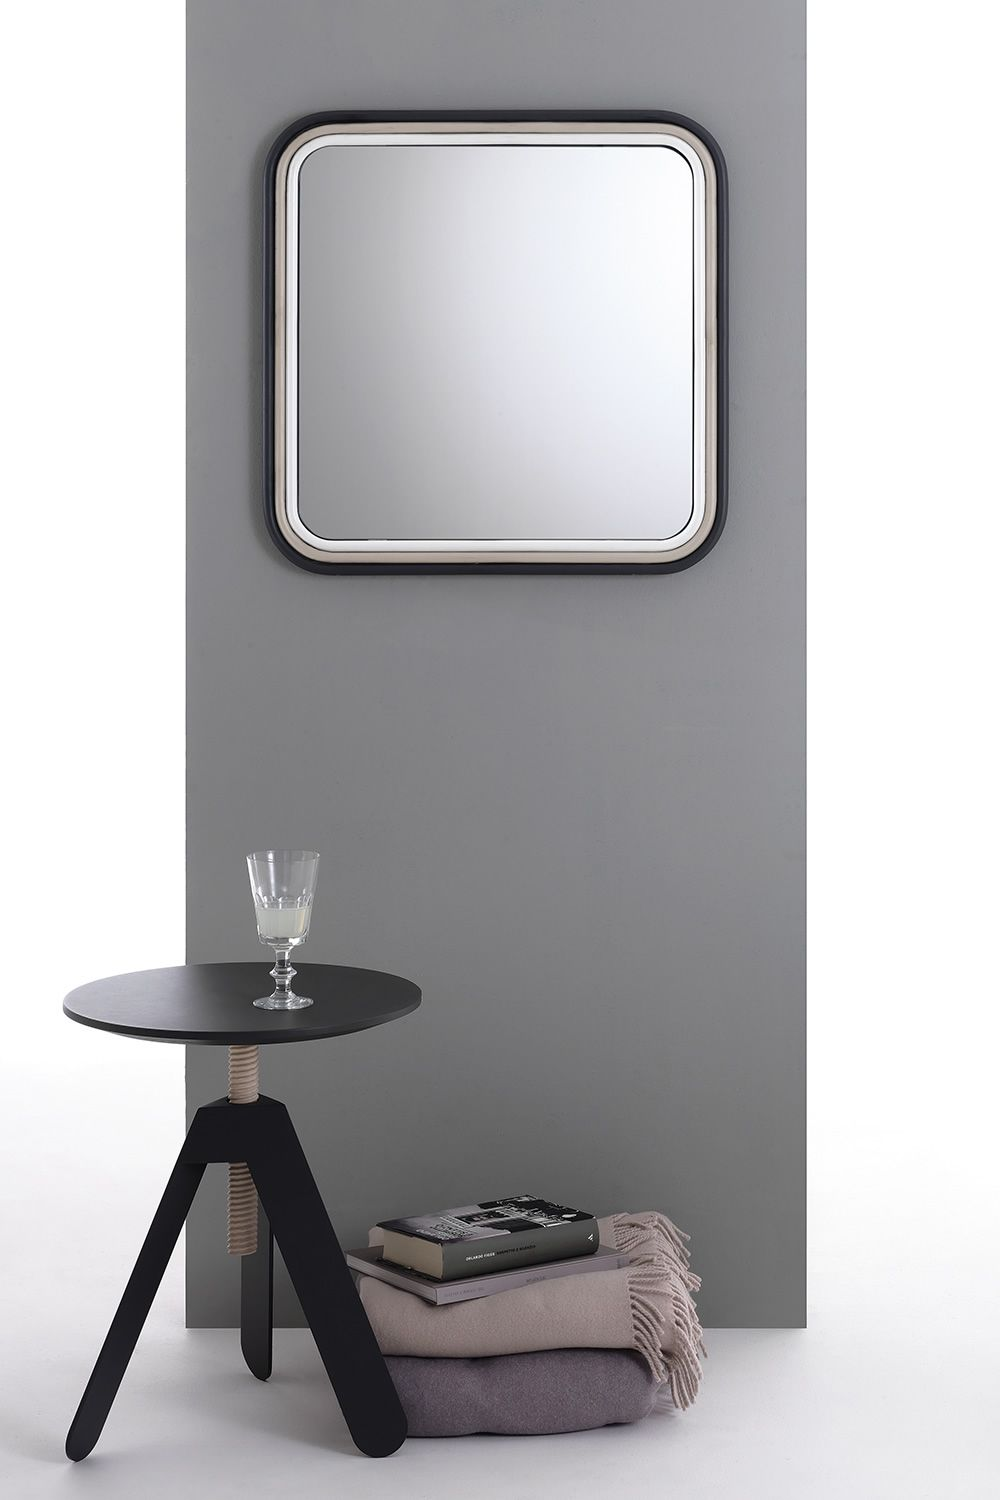 route miroir design bontempi casa carr ou rectangulaire. Black Bedroom Furniture Sets. Home Design Ideas